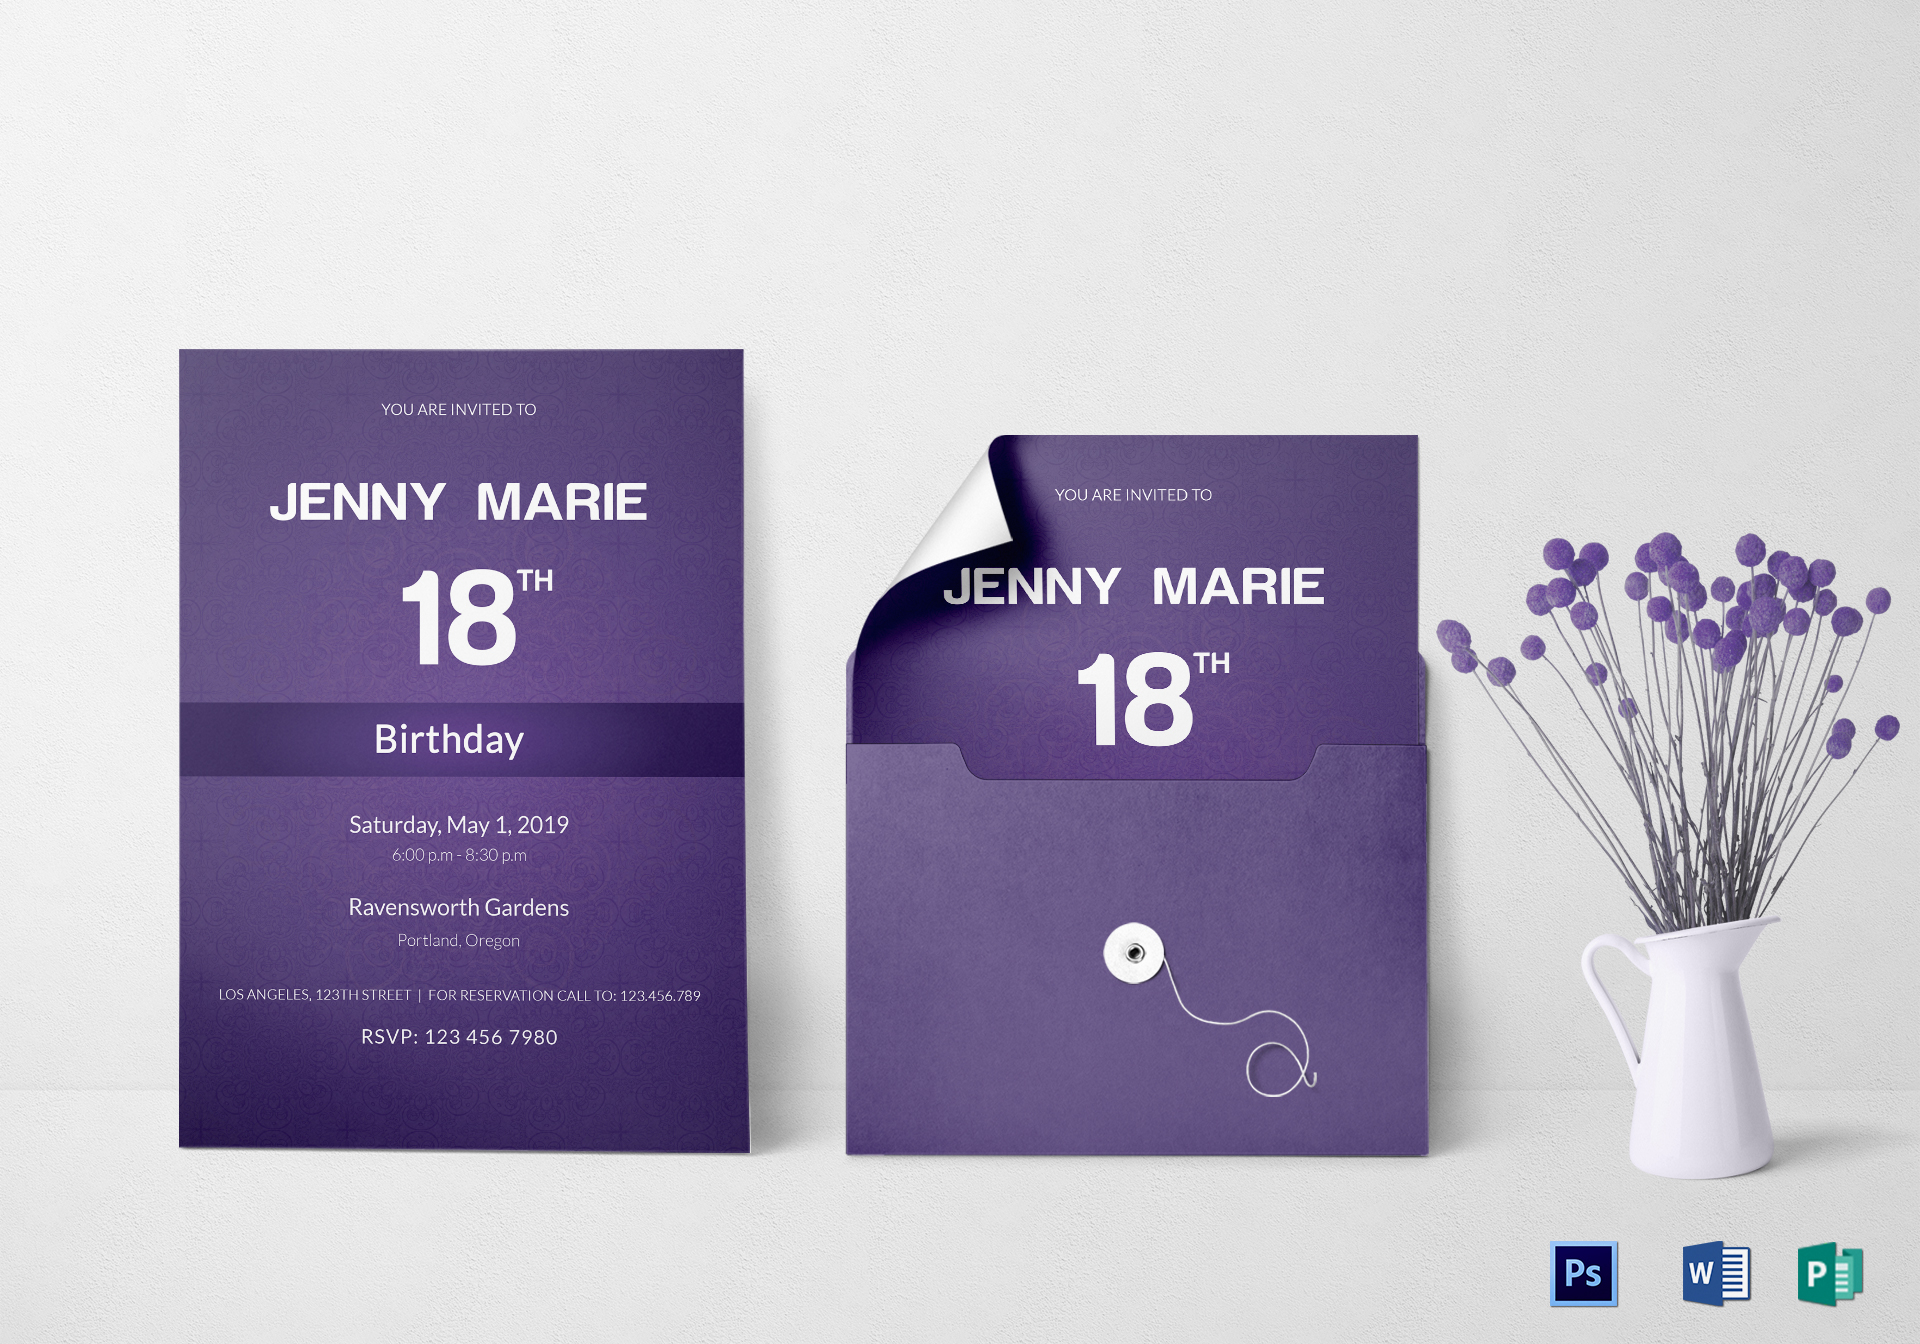 Debut Event Invitation Card Design Template in Word PSD Publisher